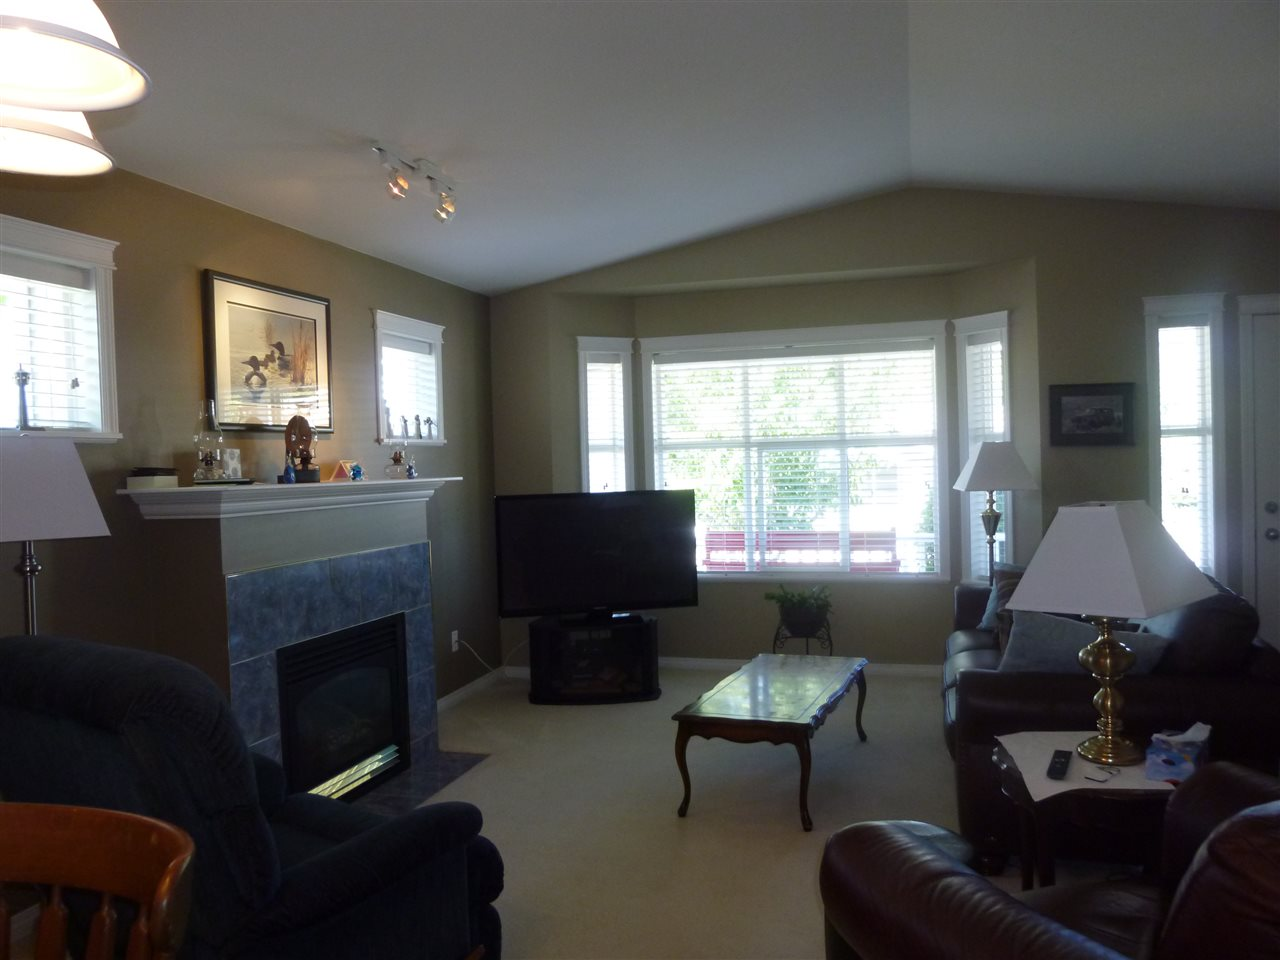 "Photo 5: Photos: 5644 CASCADE Crescent in Sechelt: Sechelt District House for sale in ""CASCADE CRESCENT"" (Sunshine Coast)  : MLS®# R2102236"